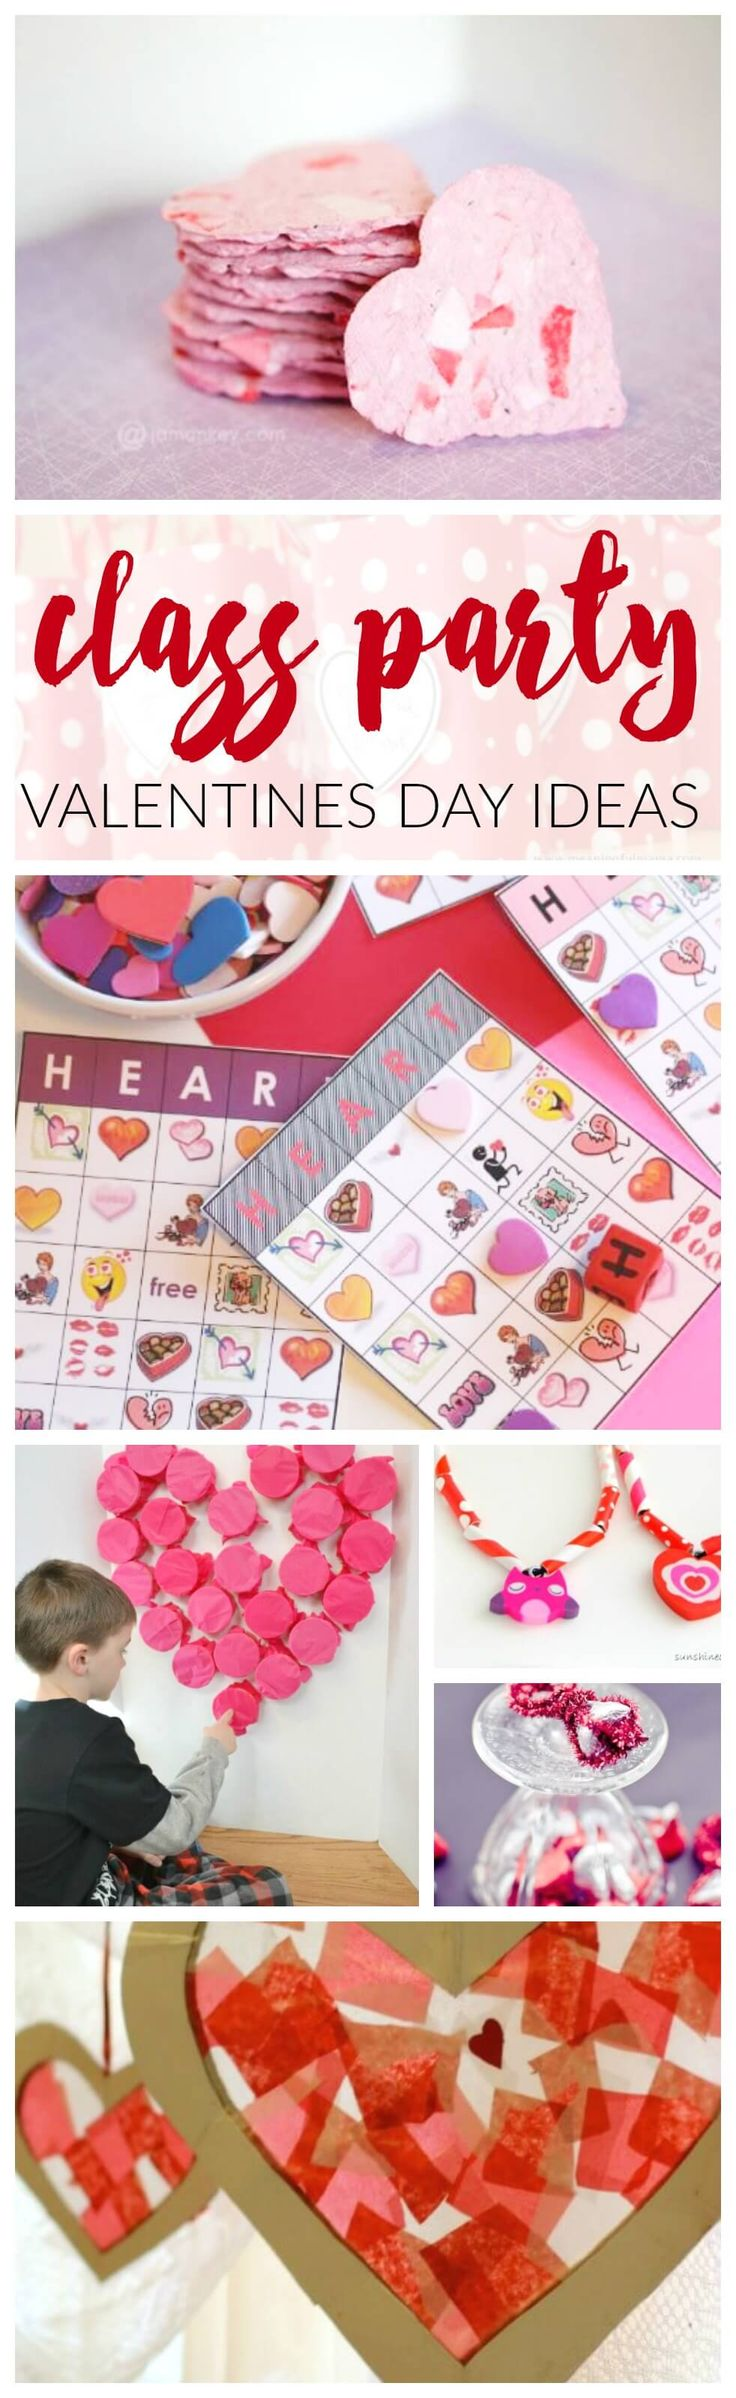 Class party valentines day ideas! If you are the class mom or wanting to throw an awesome party, these kids Valentine's Crafts, Snacks, and Ideas are for you.